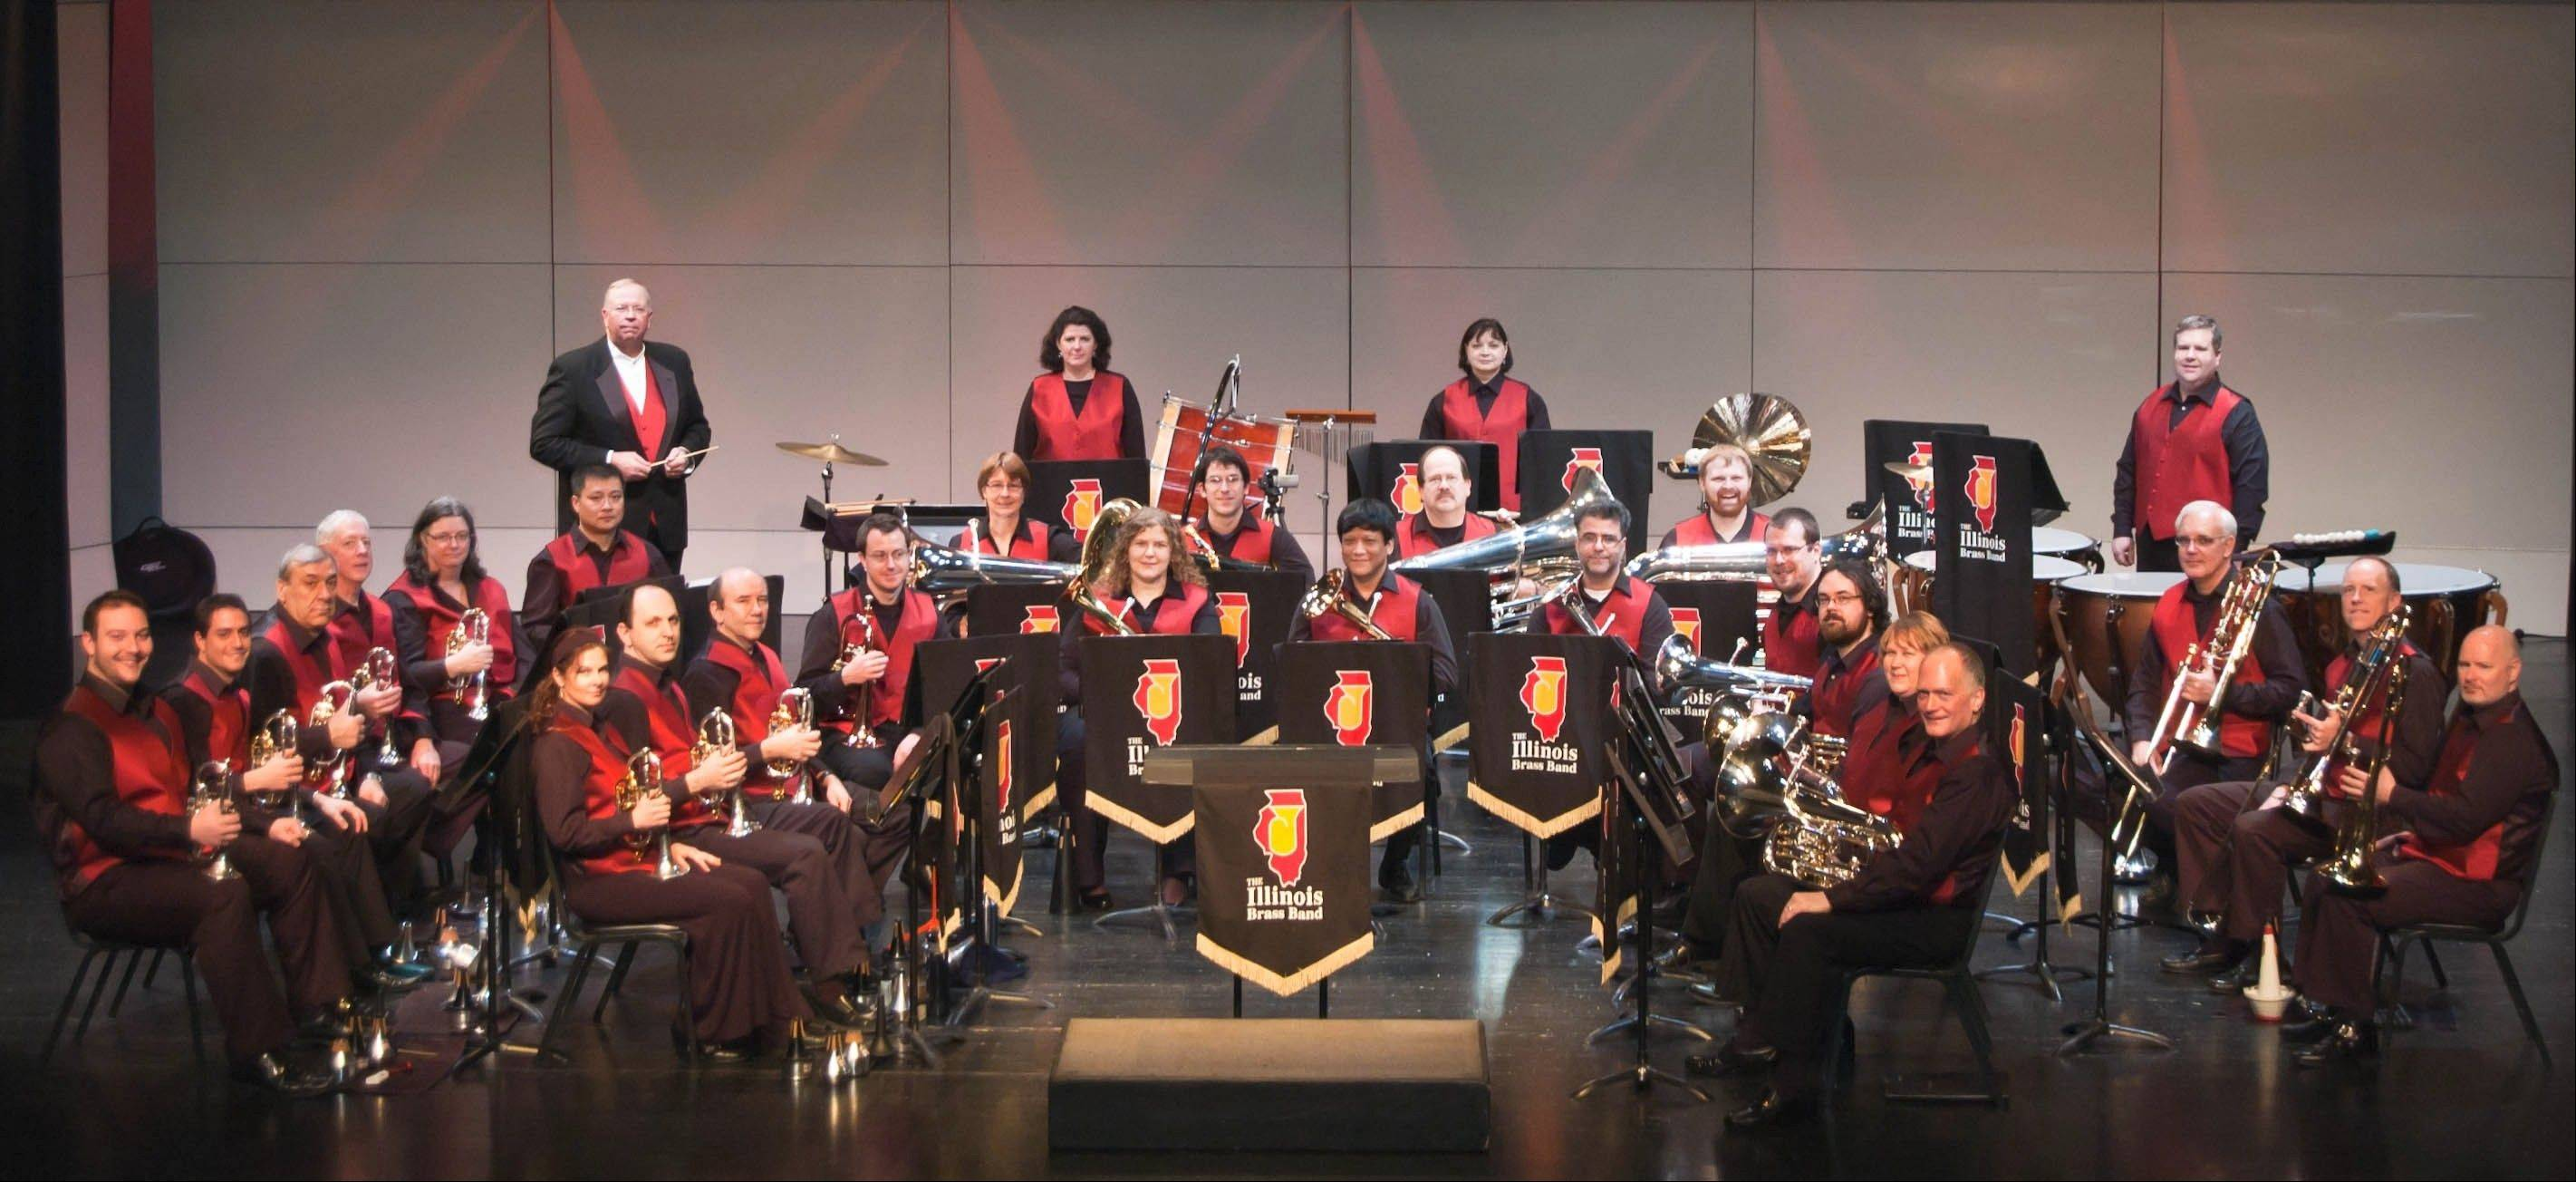 The Illinois Brass Band performs music from the movies Nov. 4 at Cutting Hall.